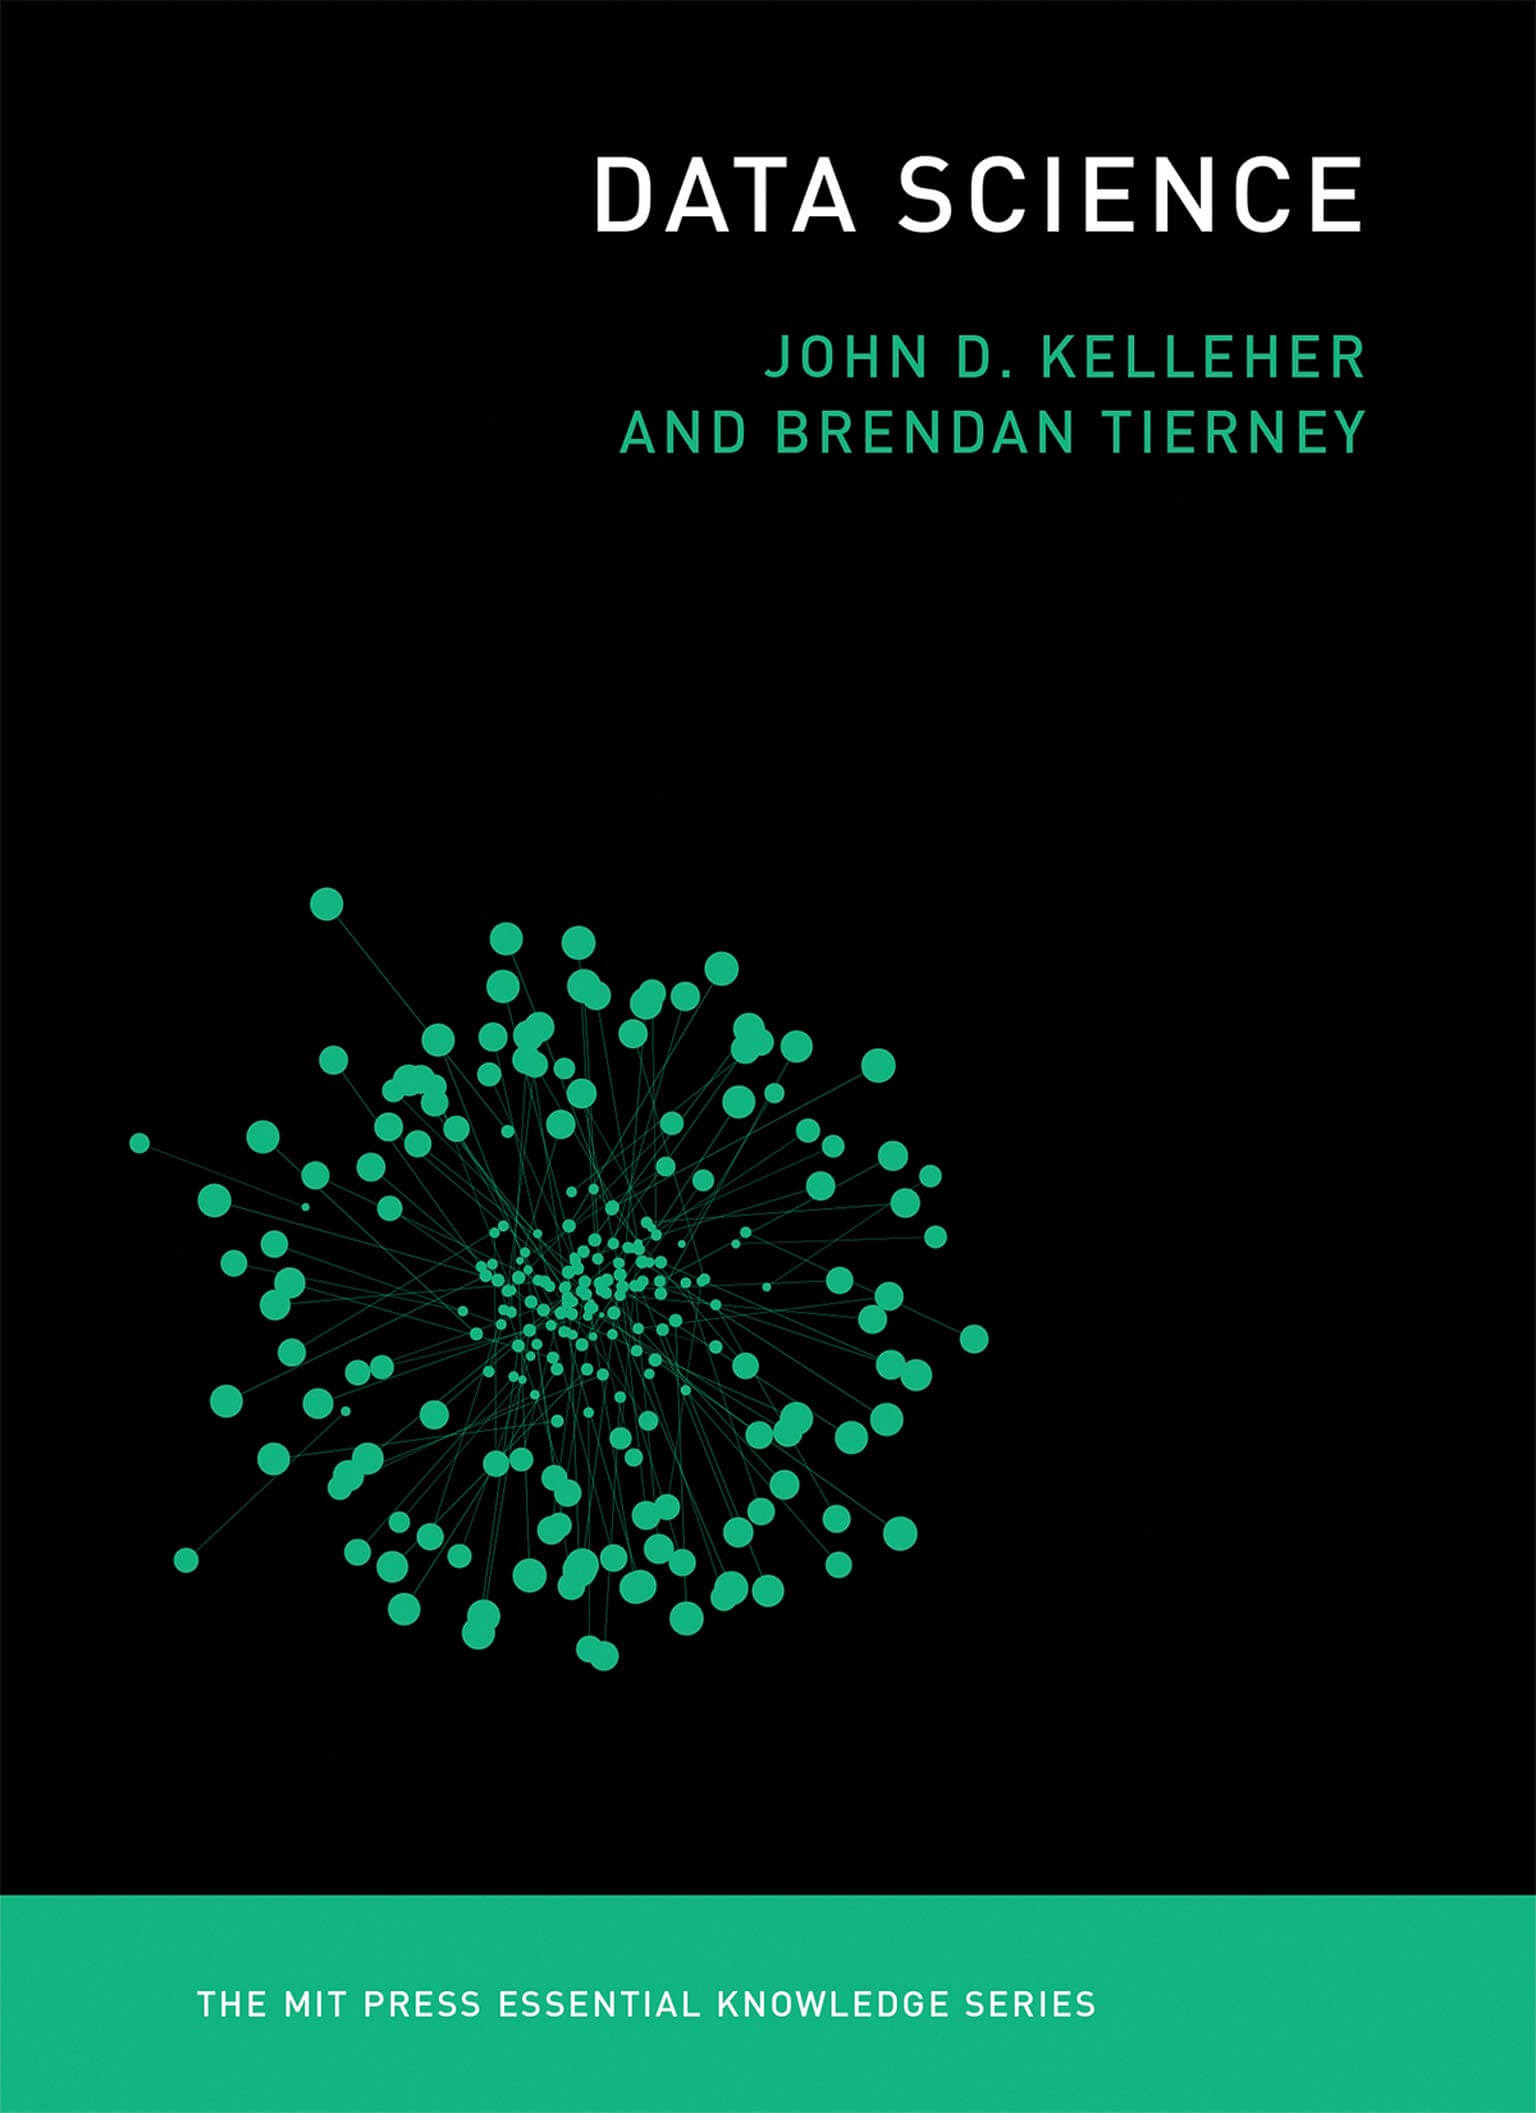 Data Science (The MIT Press Essential Knowledge series) Book